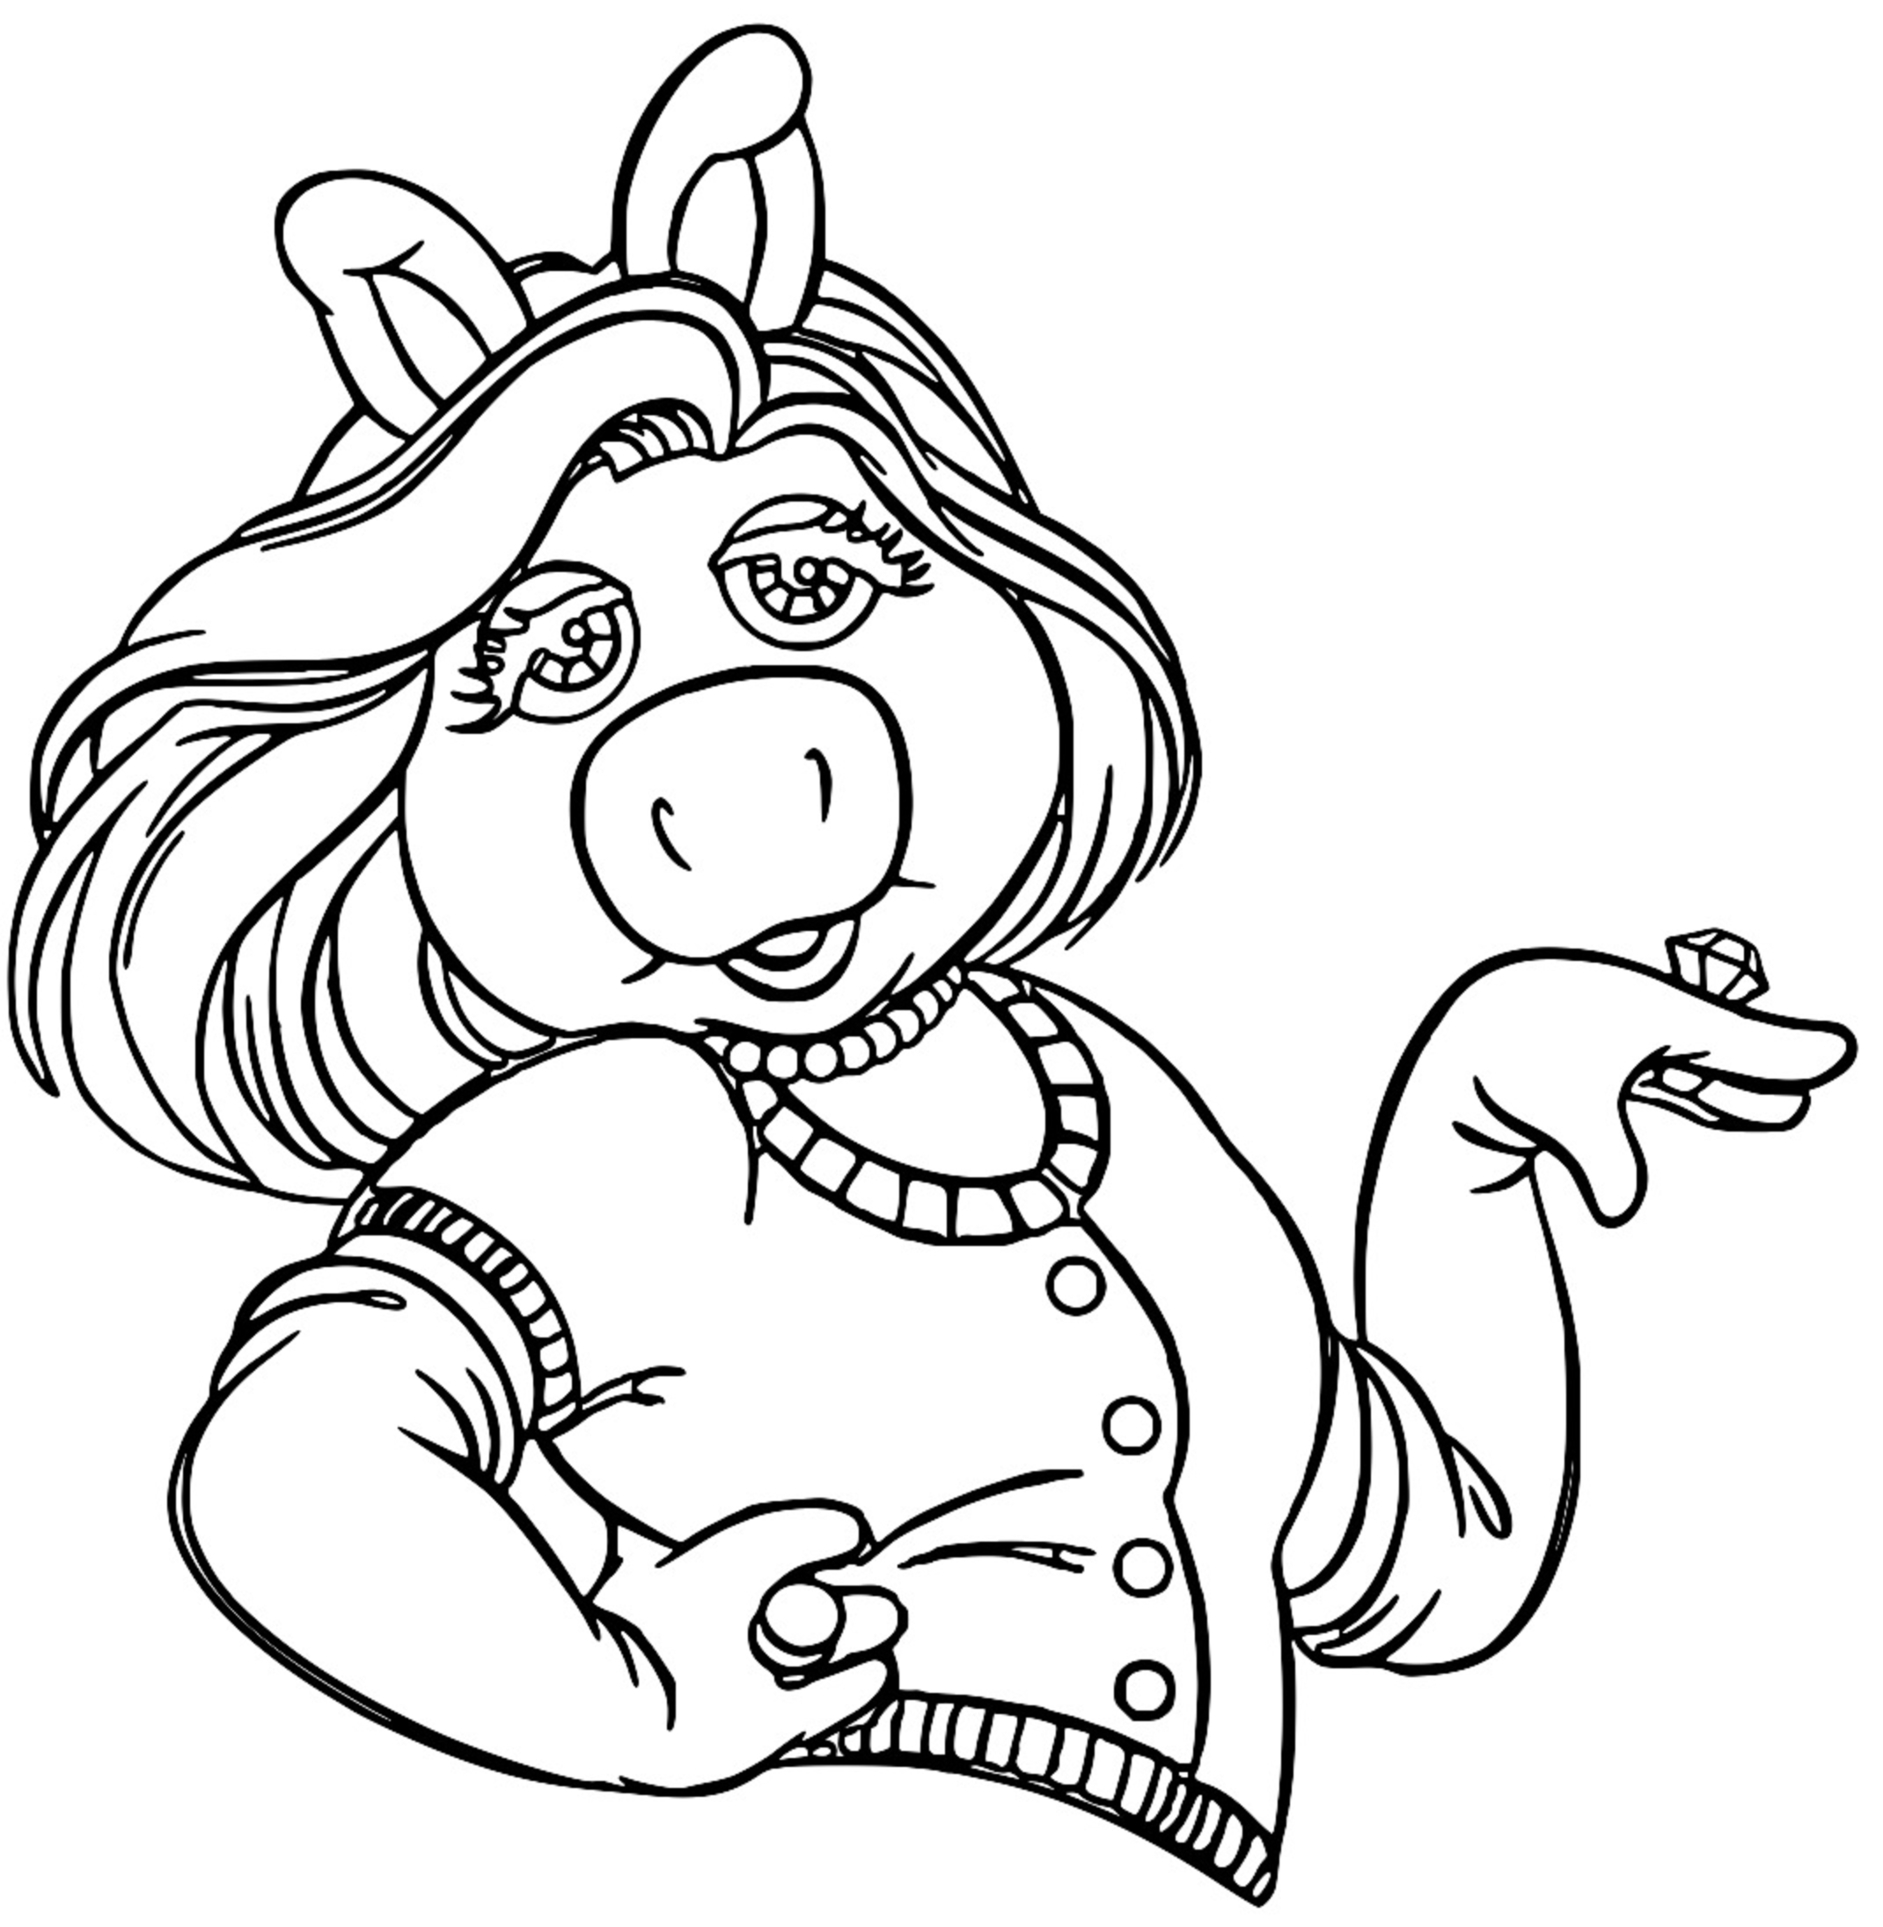 The Muppets miss piggy 3 Cartoon Coloring Page